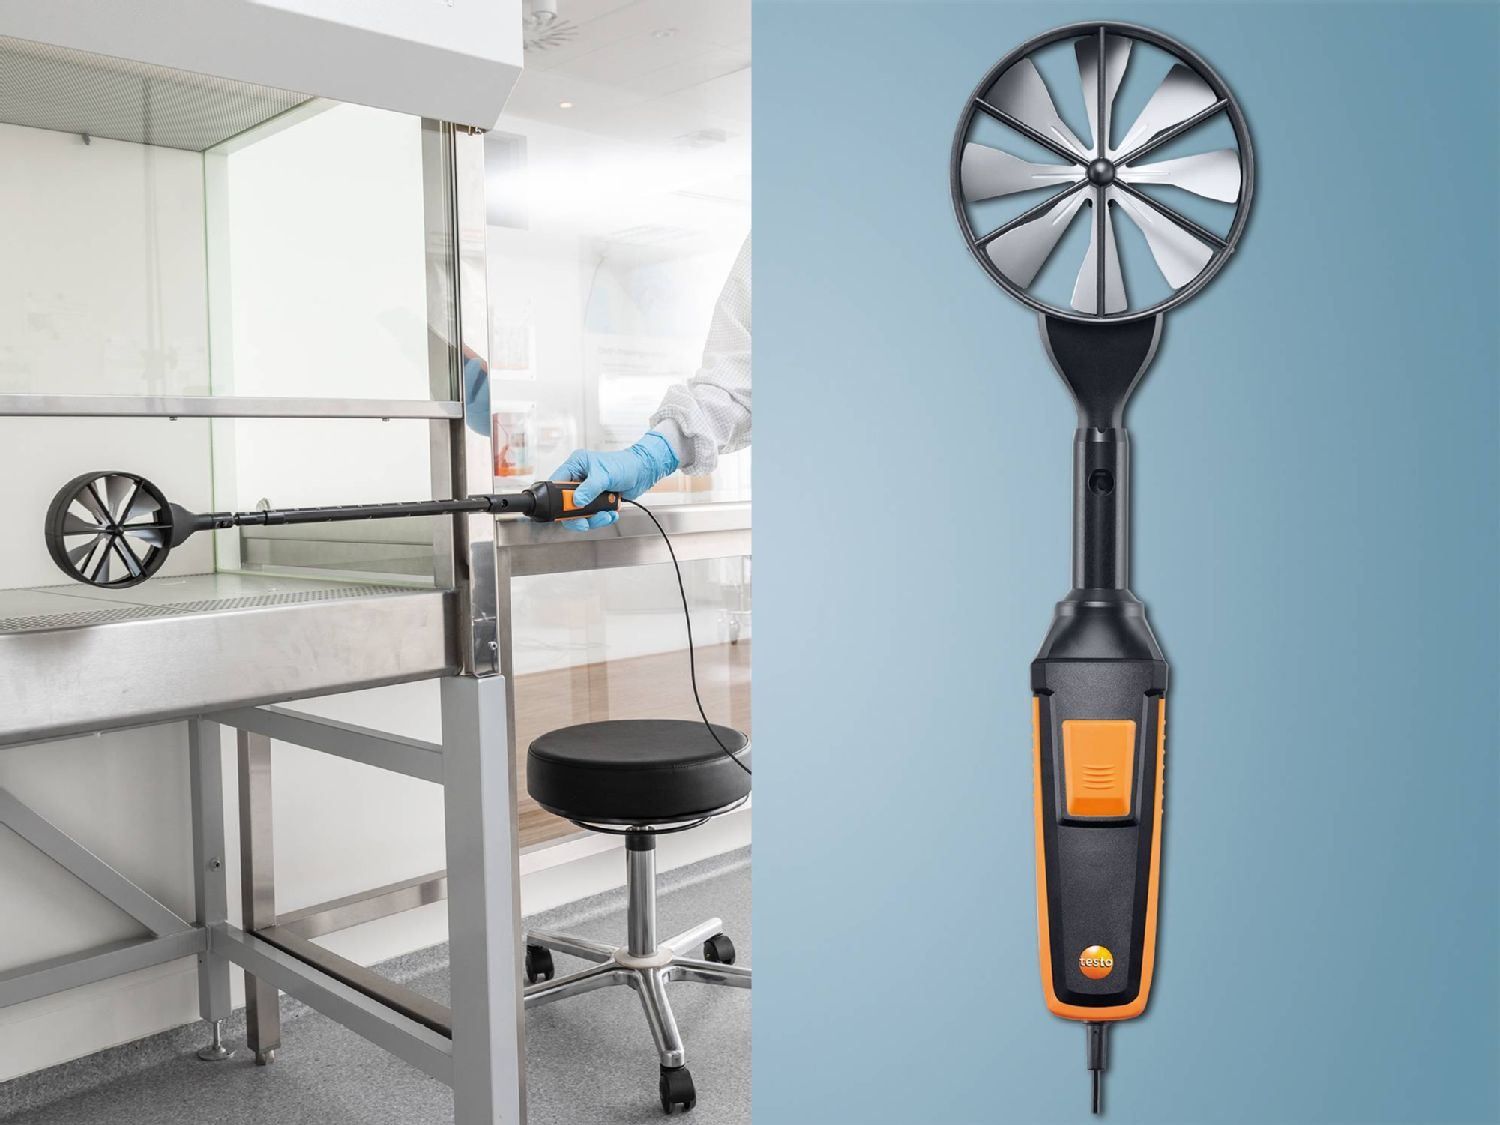 testo 440 high-precision vane probe